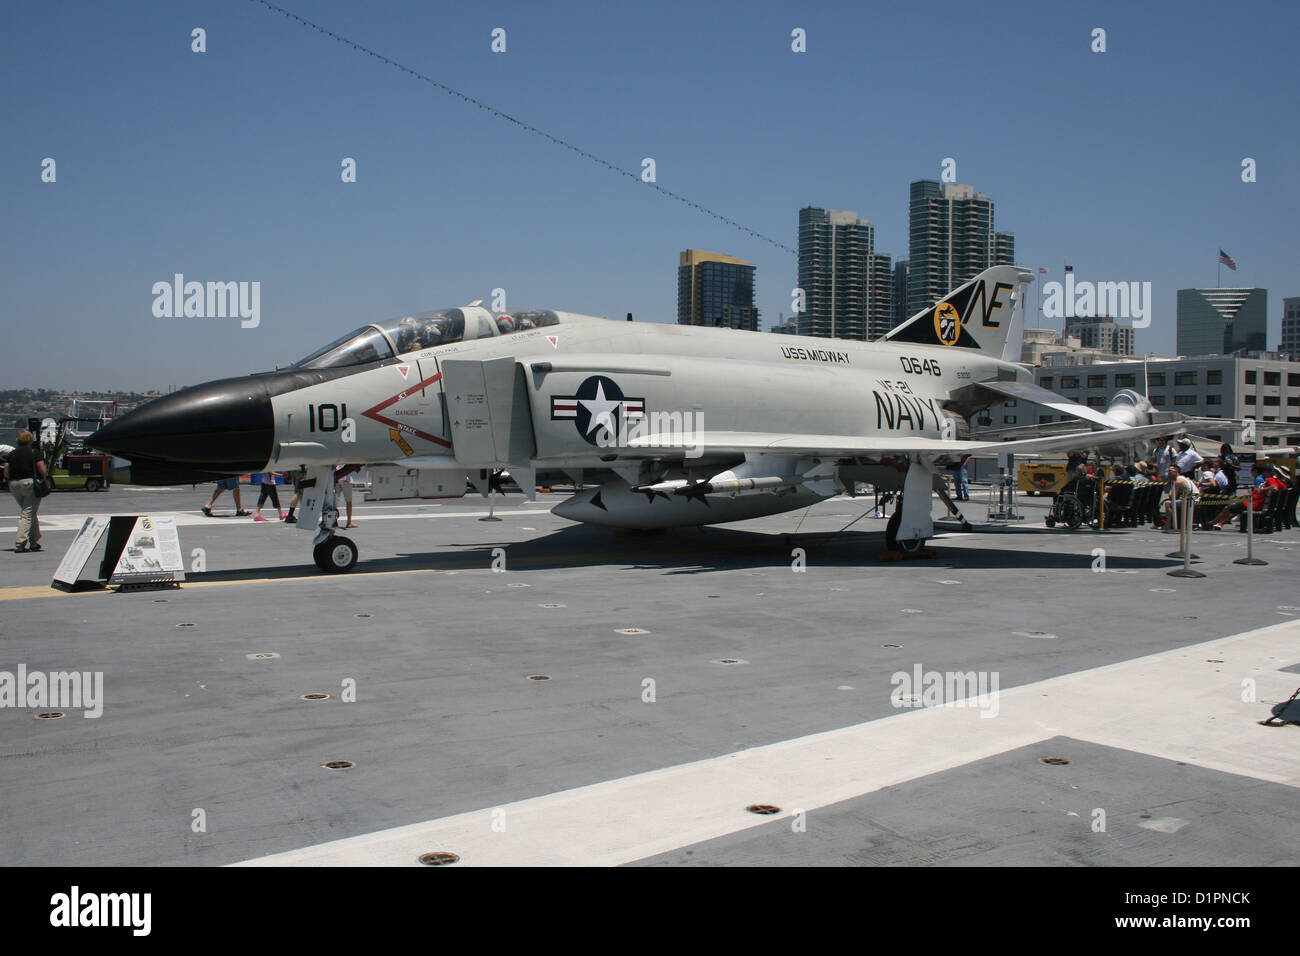 vietnam aircraft carrier jet html with Stock Photo Us Navy F4 Phantom On Uss Midway San Diego California Usa 52745523 on Douglas TA 4J as well Japan Blossom Cherry Bridge River Dove 6473 moreover Airline Malev Hungarian Airlines moreover Operations further The Airline Trans Canada Air Lines.